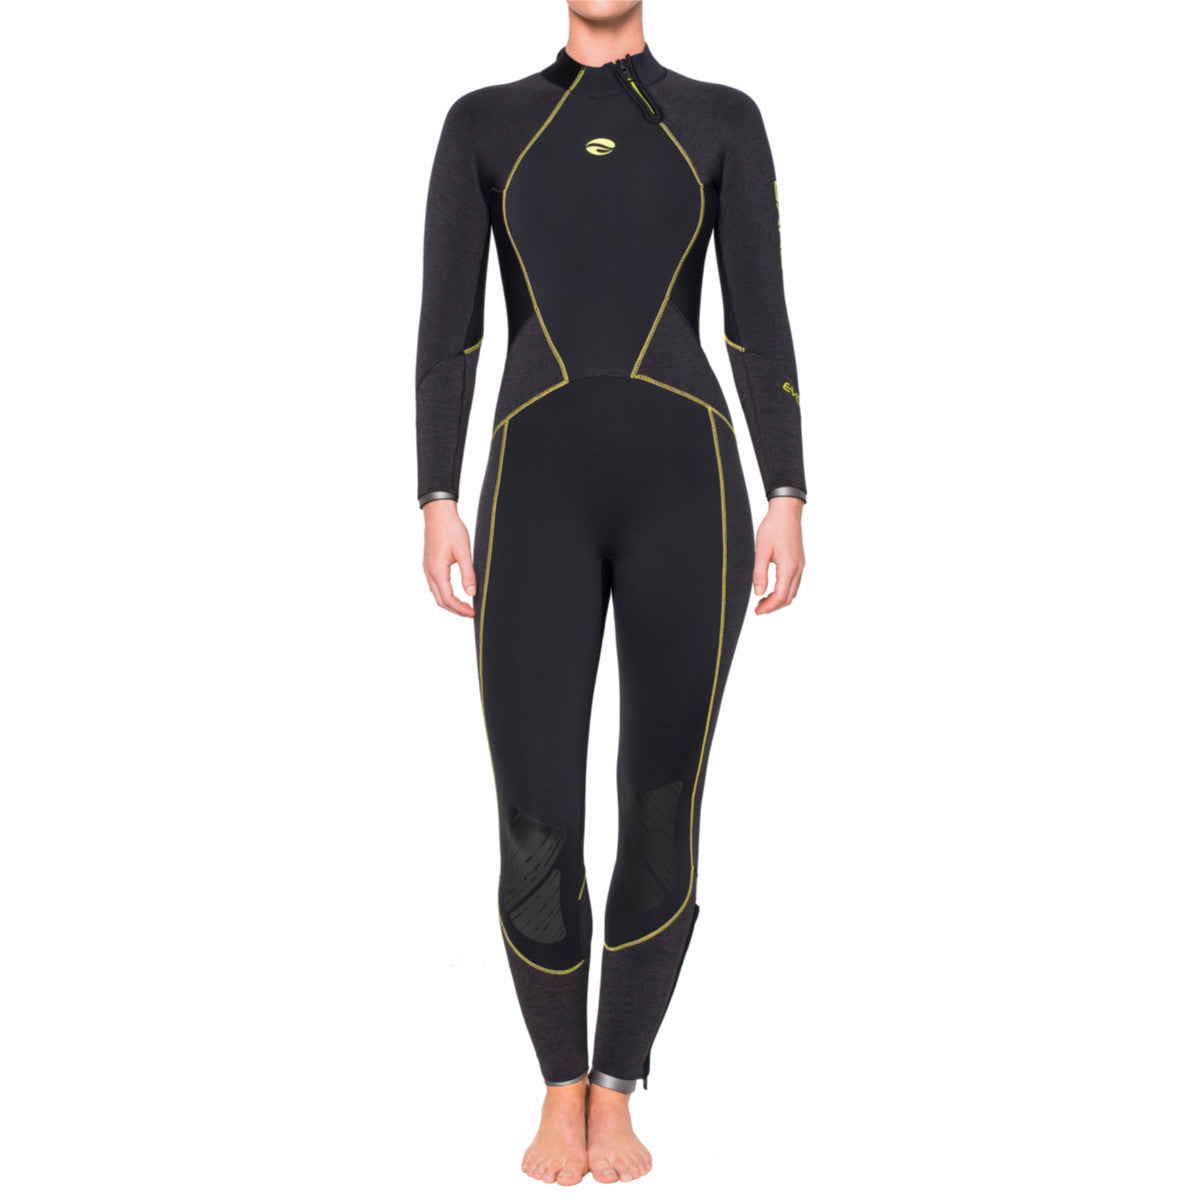 Bare Evoke 5mm Wetsuit: Womens - Oyster Diving Shop - 1